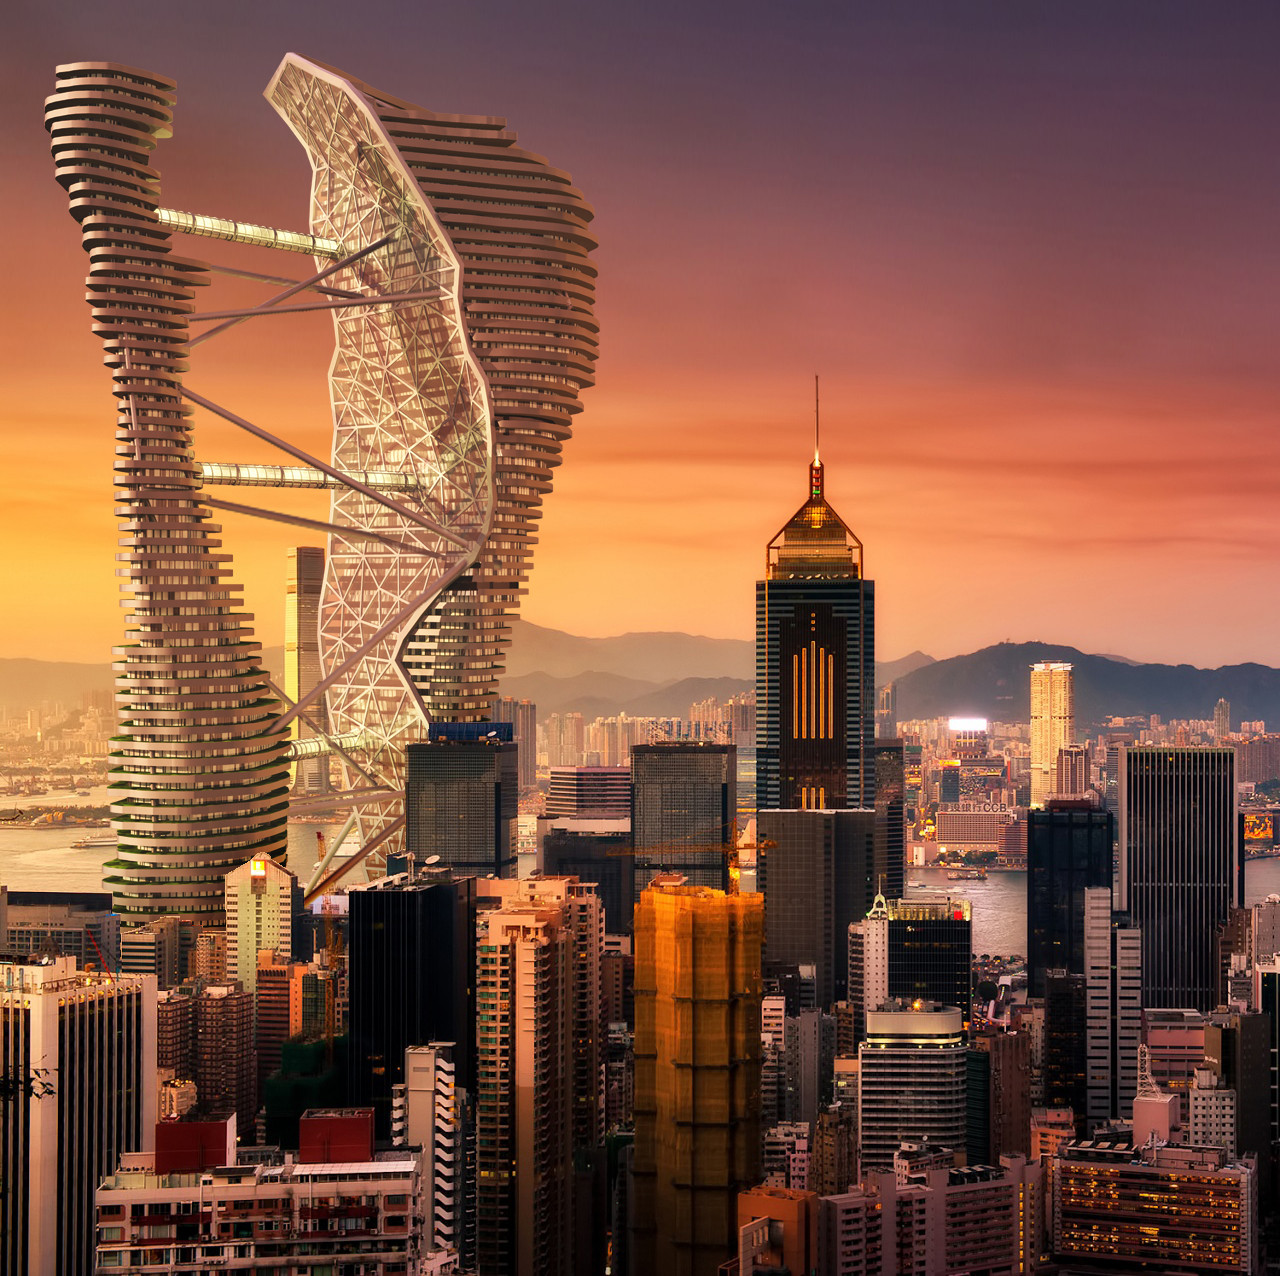 Studio CTC Imagines Terraced Twin Skyscrapers in Hong Kong, © Studio CACHOUA TORRES CAMILLETTI